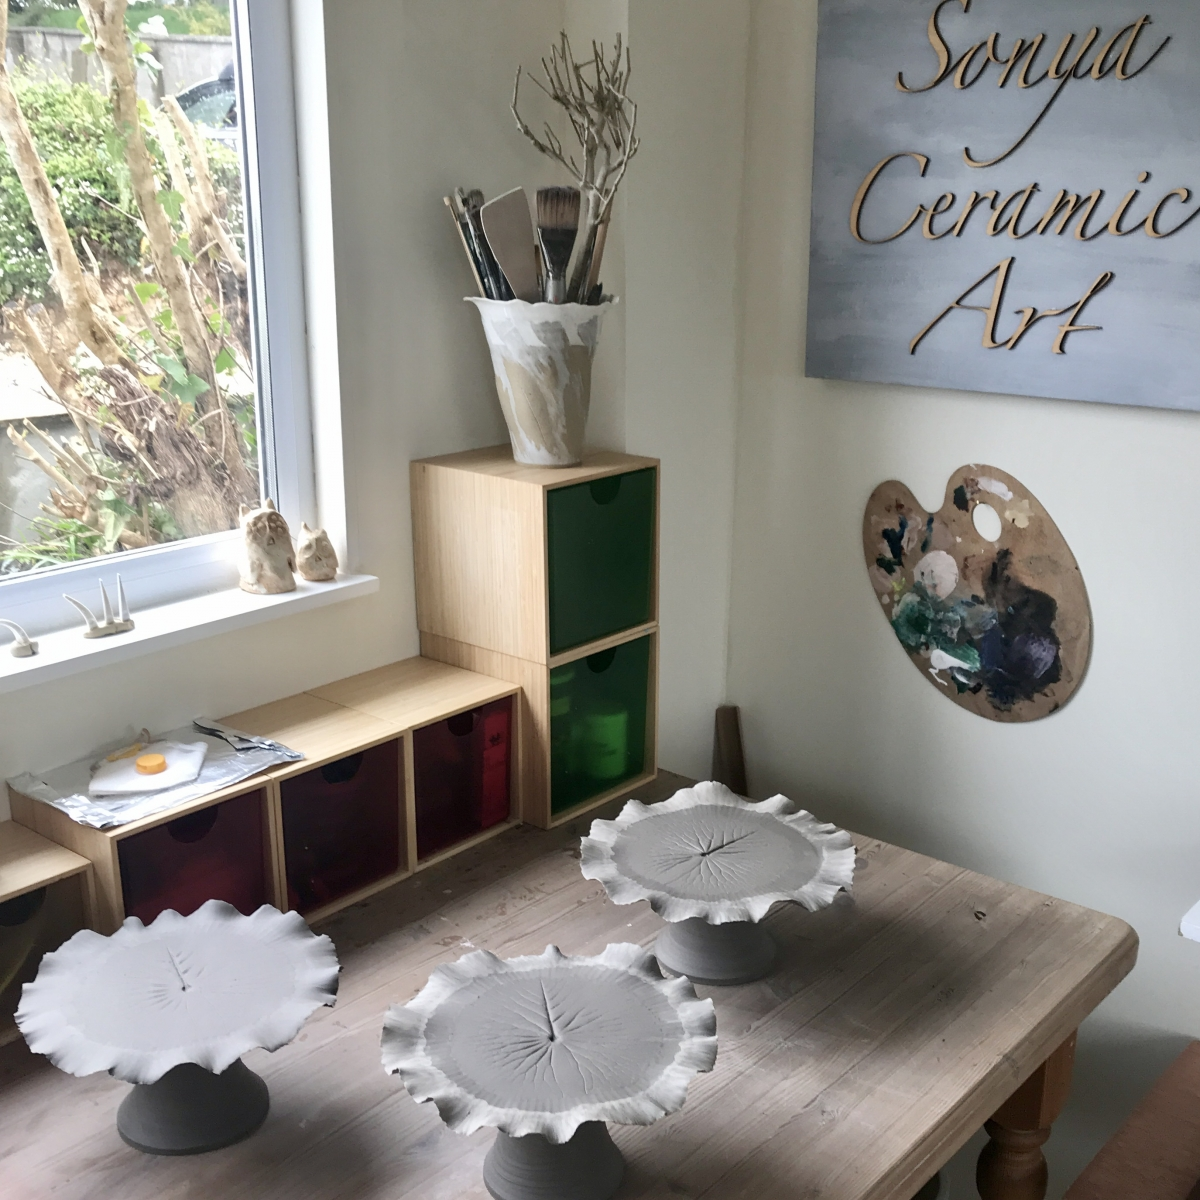 Pond Lily Leaf Cake Stands by Sony Ceramic Art (studio shot freshly made in clay)